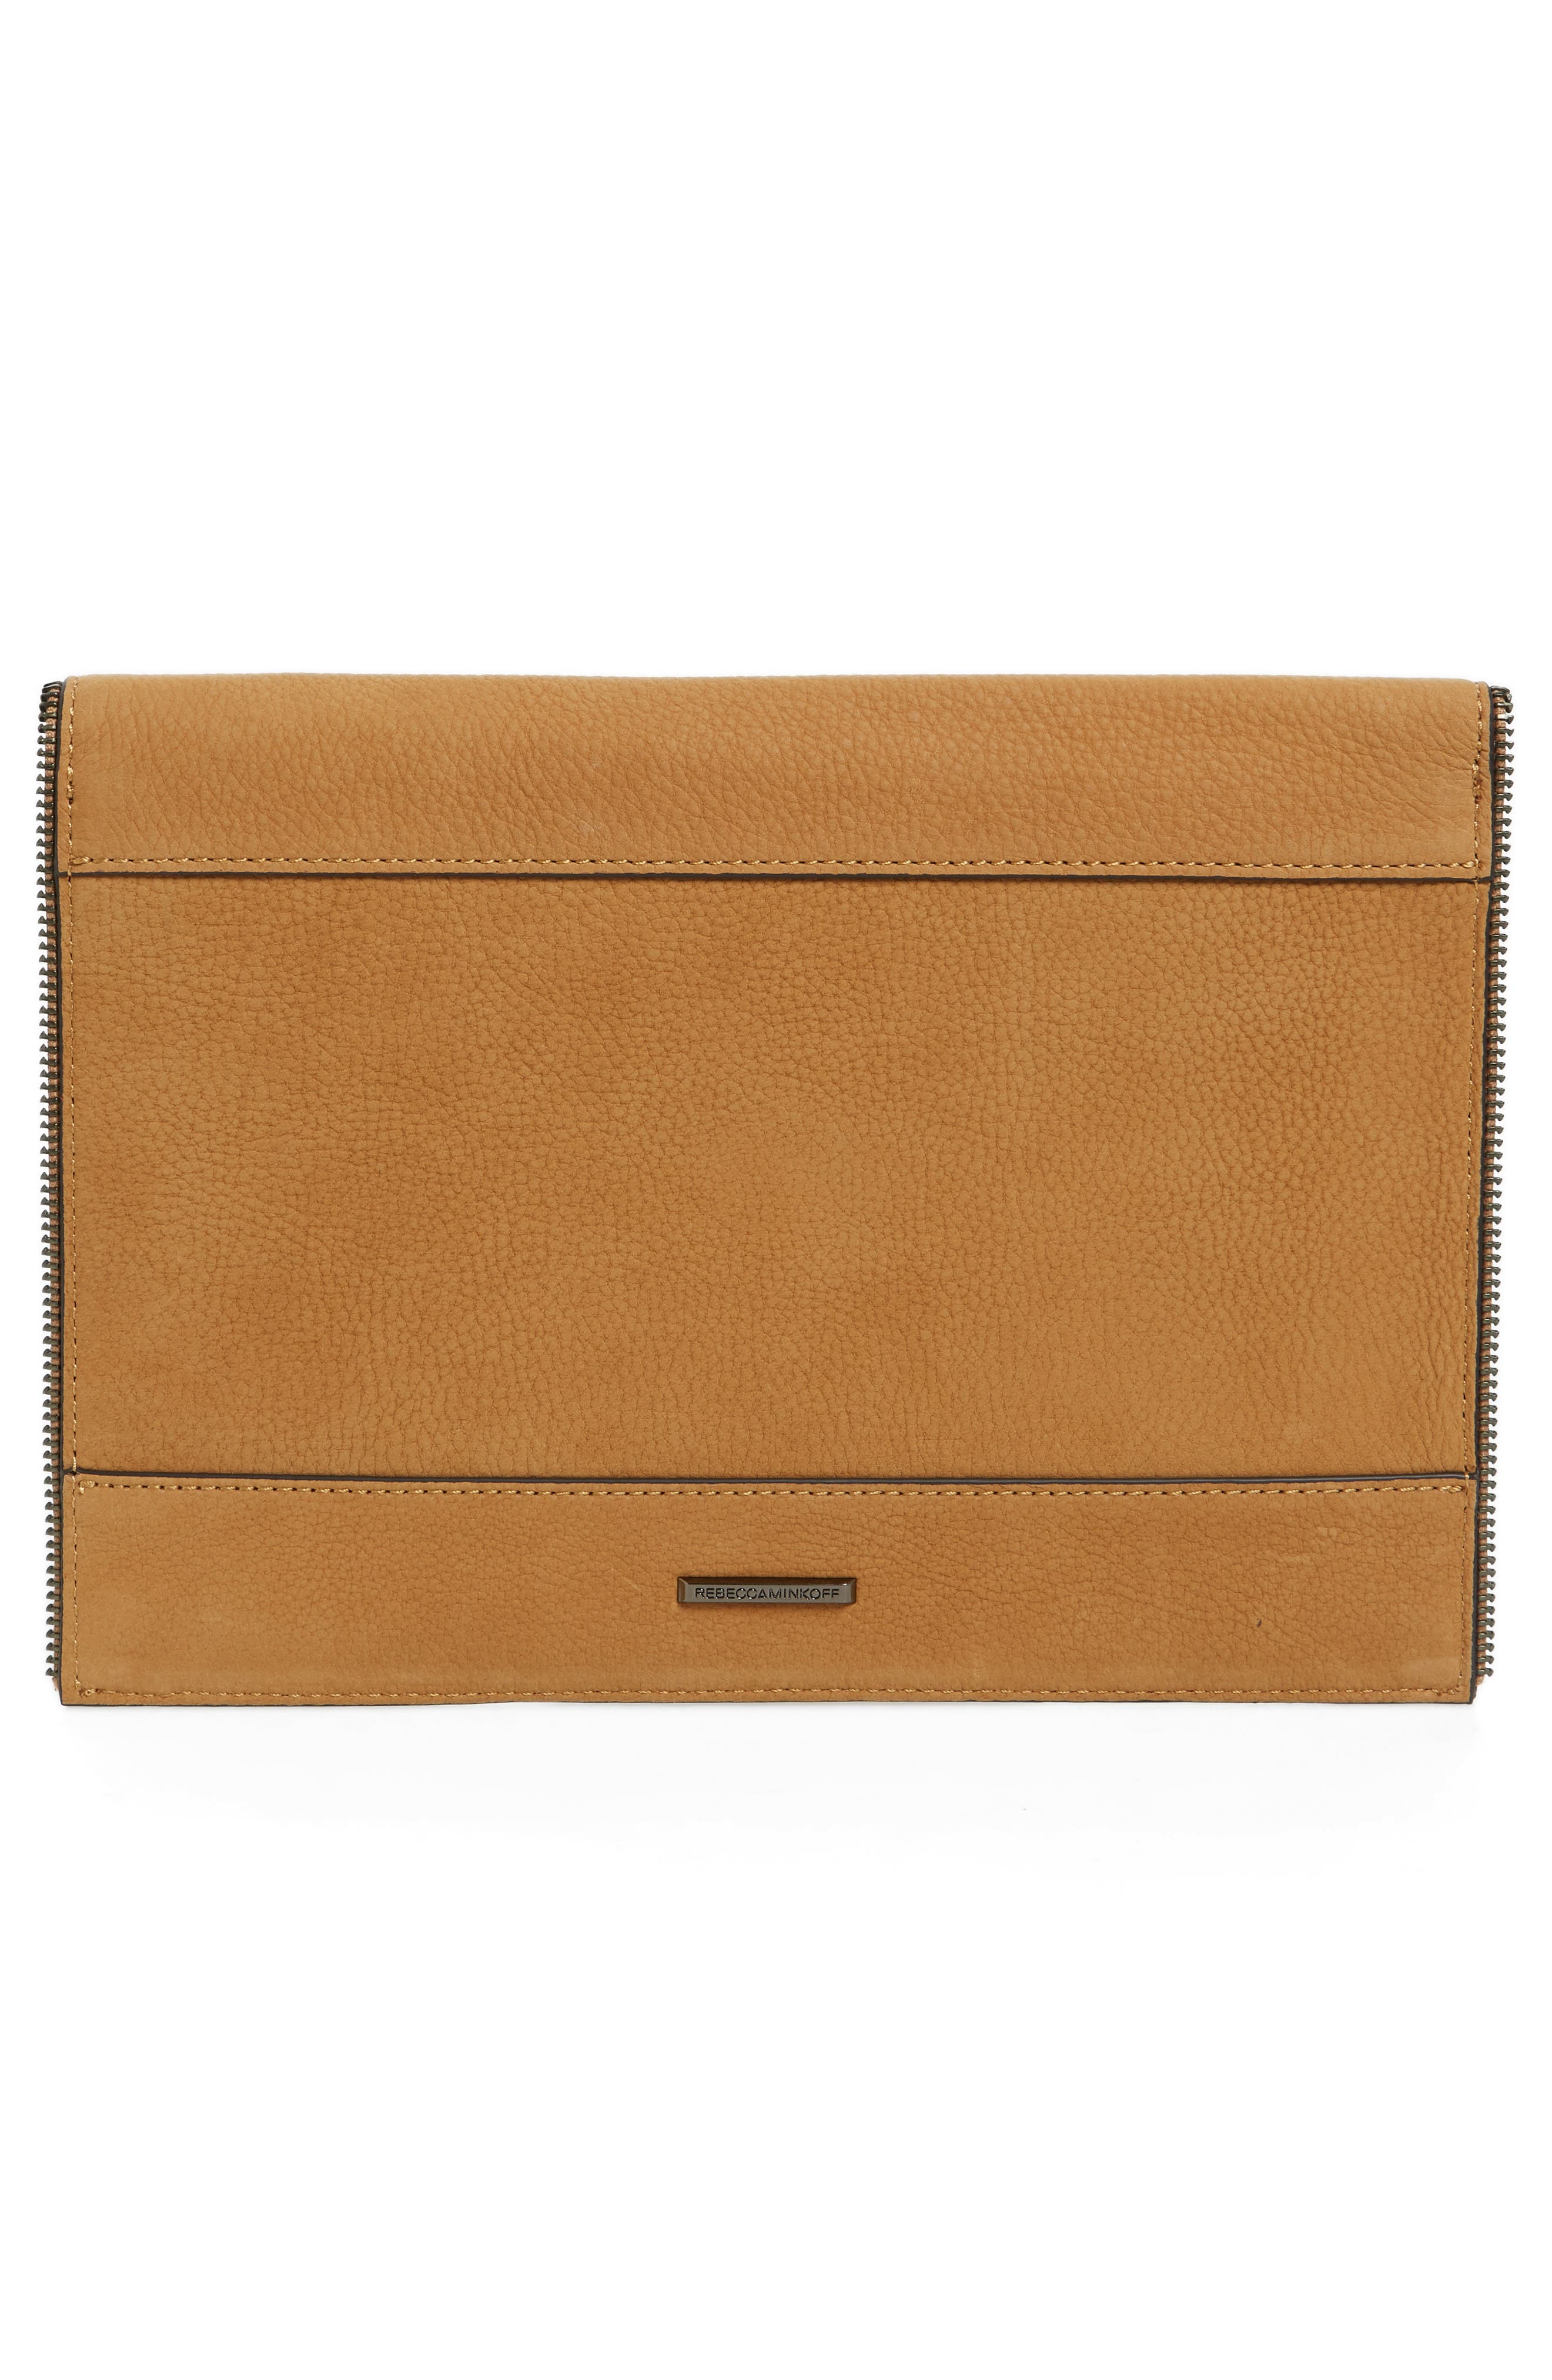 REBECCA MINKOFF,                             Leo Leather Envelope Clutch,                             Alternate thumbnail 4, color,                             210